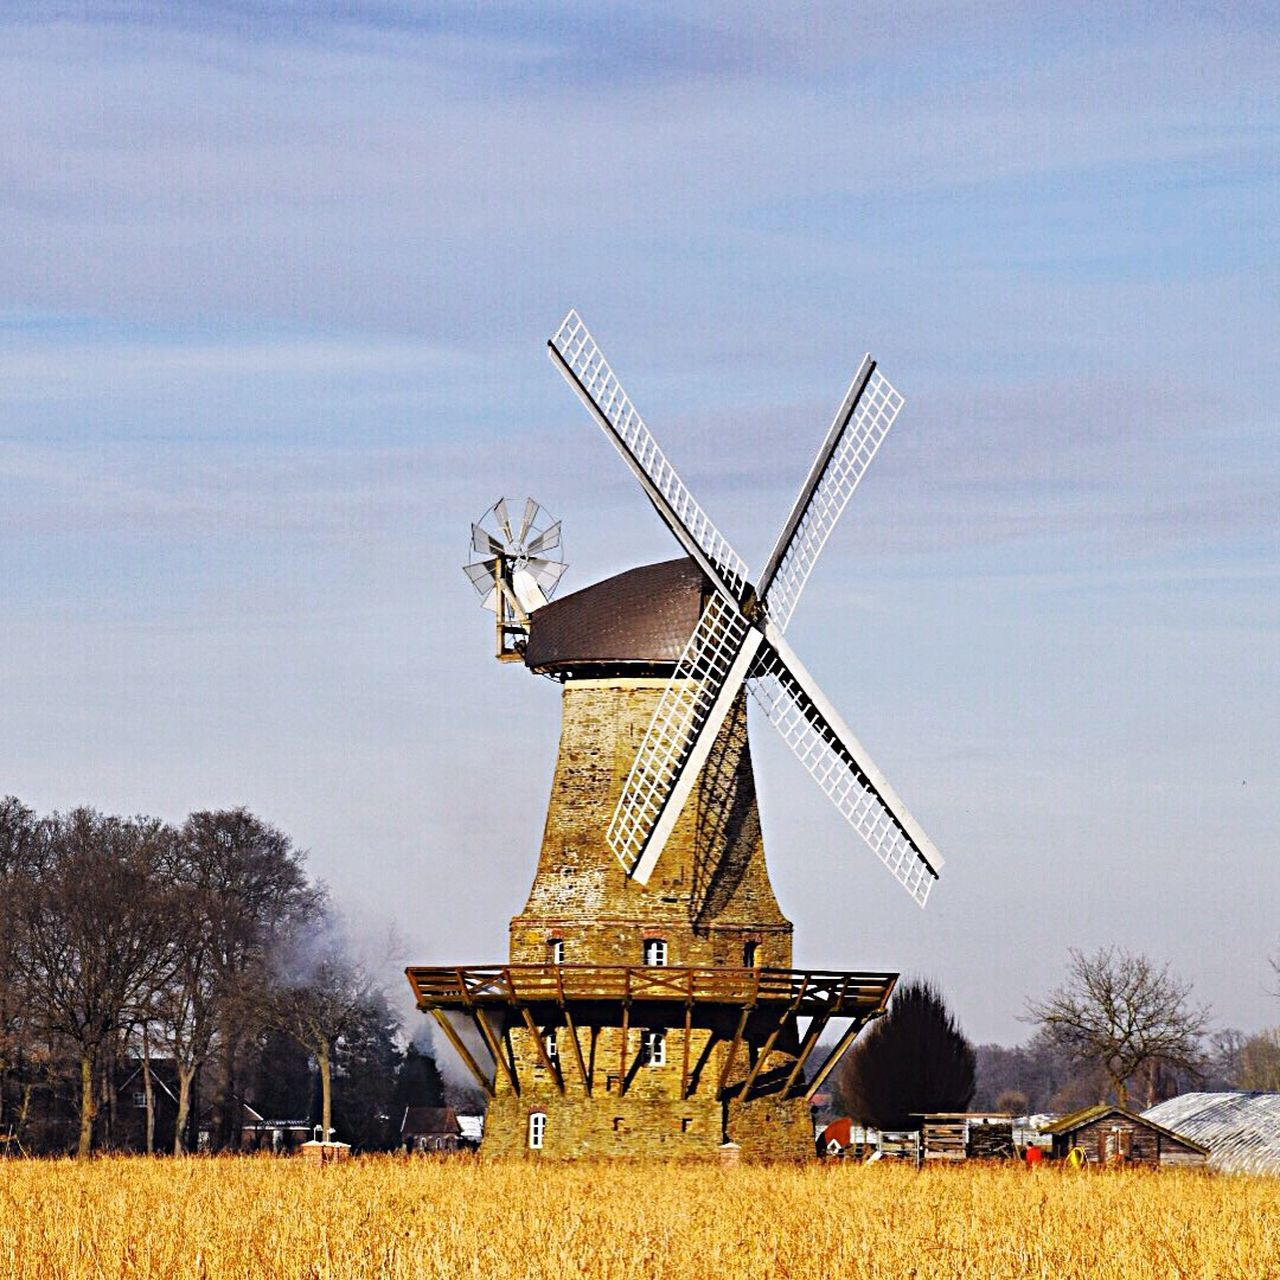 wind power, alternative energy, windmill, wind turbine, field, renewable energy, traditional windmill, day, sky, outdoors, fuel and power generation, nature, agriculture, no people, built structure, tree, landscape, rural scene, architecture, beauty in nature, scenics, industrial windmill, grass